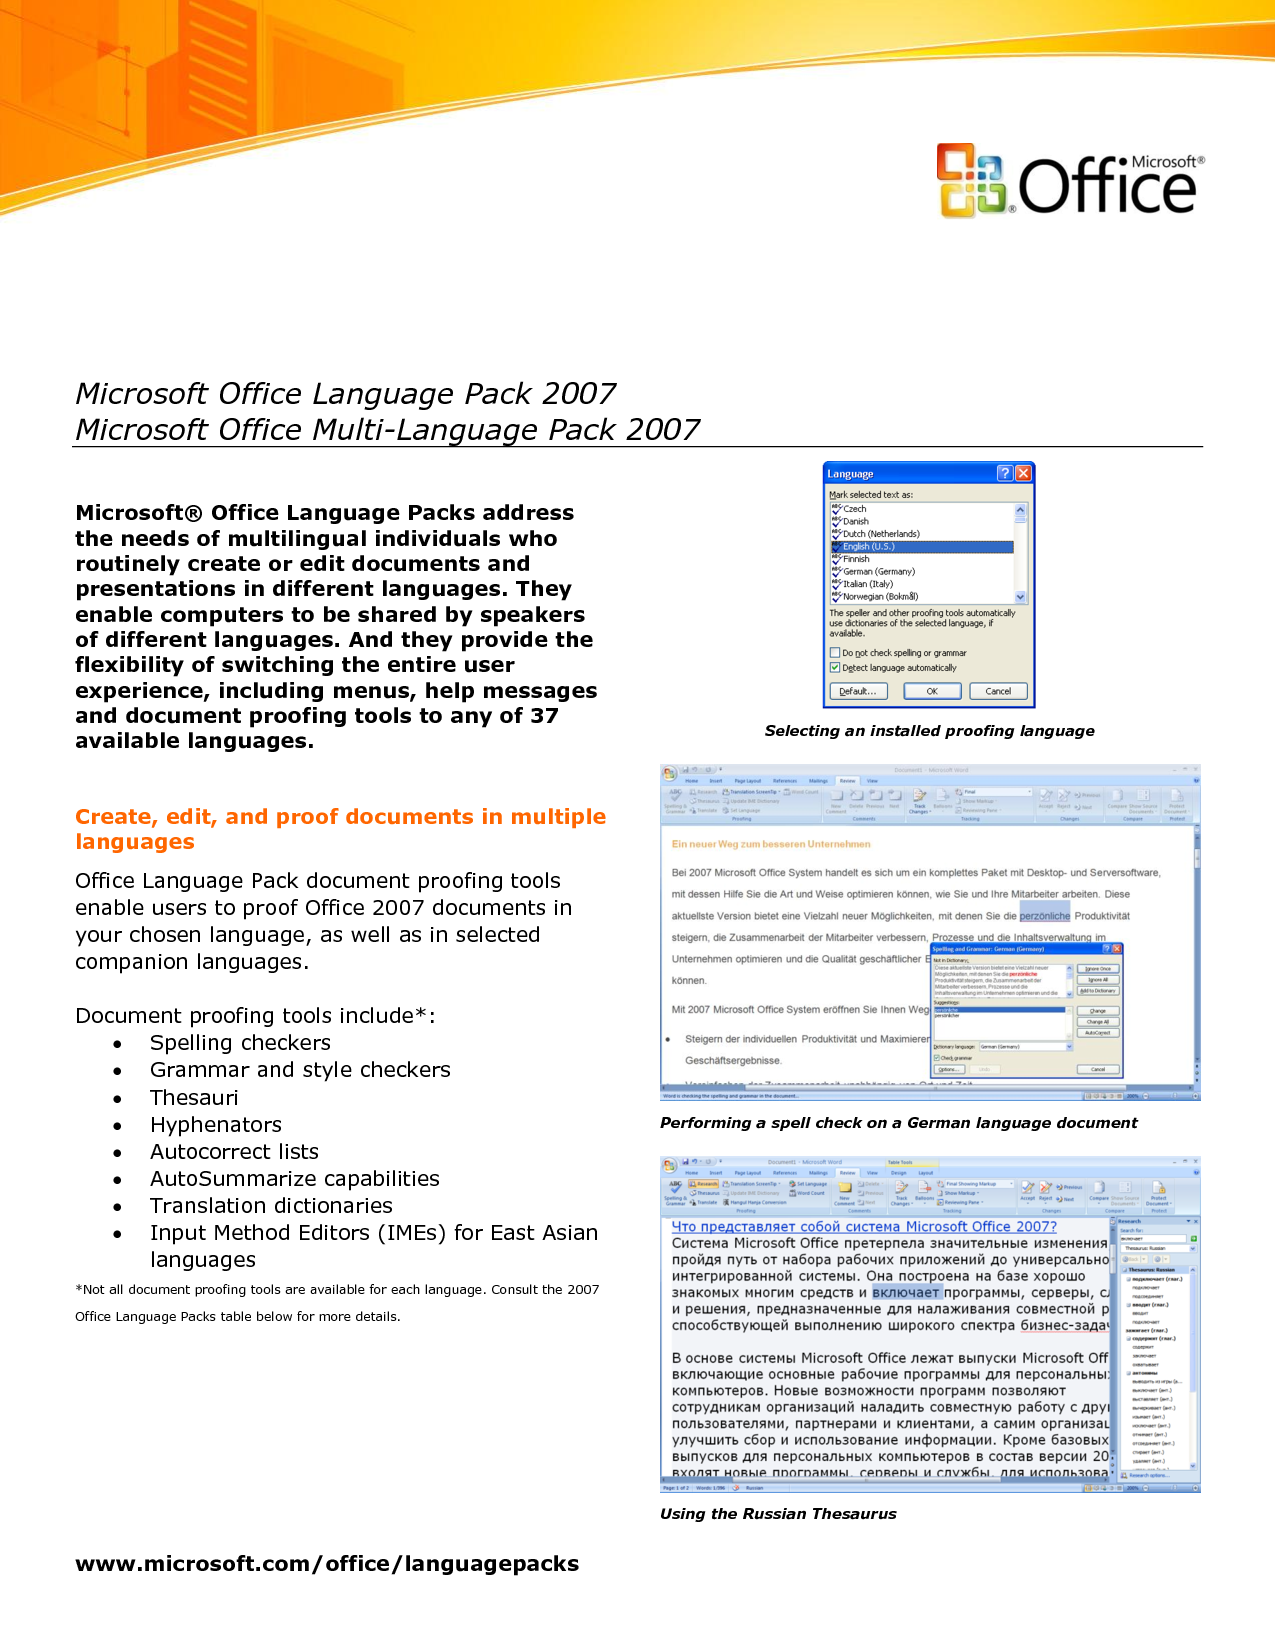 Free Microsoft Office Templates Download Free Microsoft Office Templates  Download, Word 2013 Free Templates,